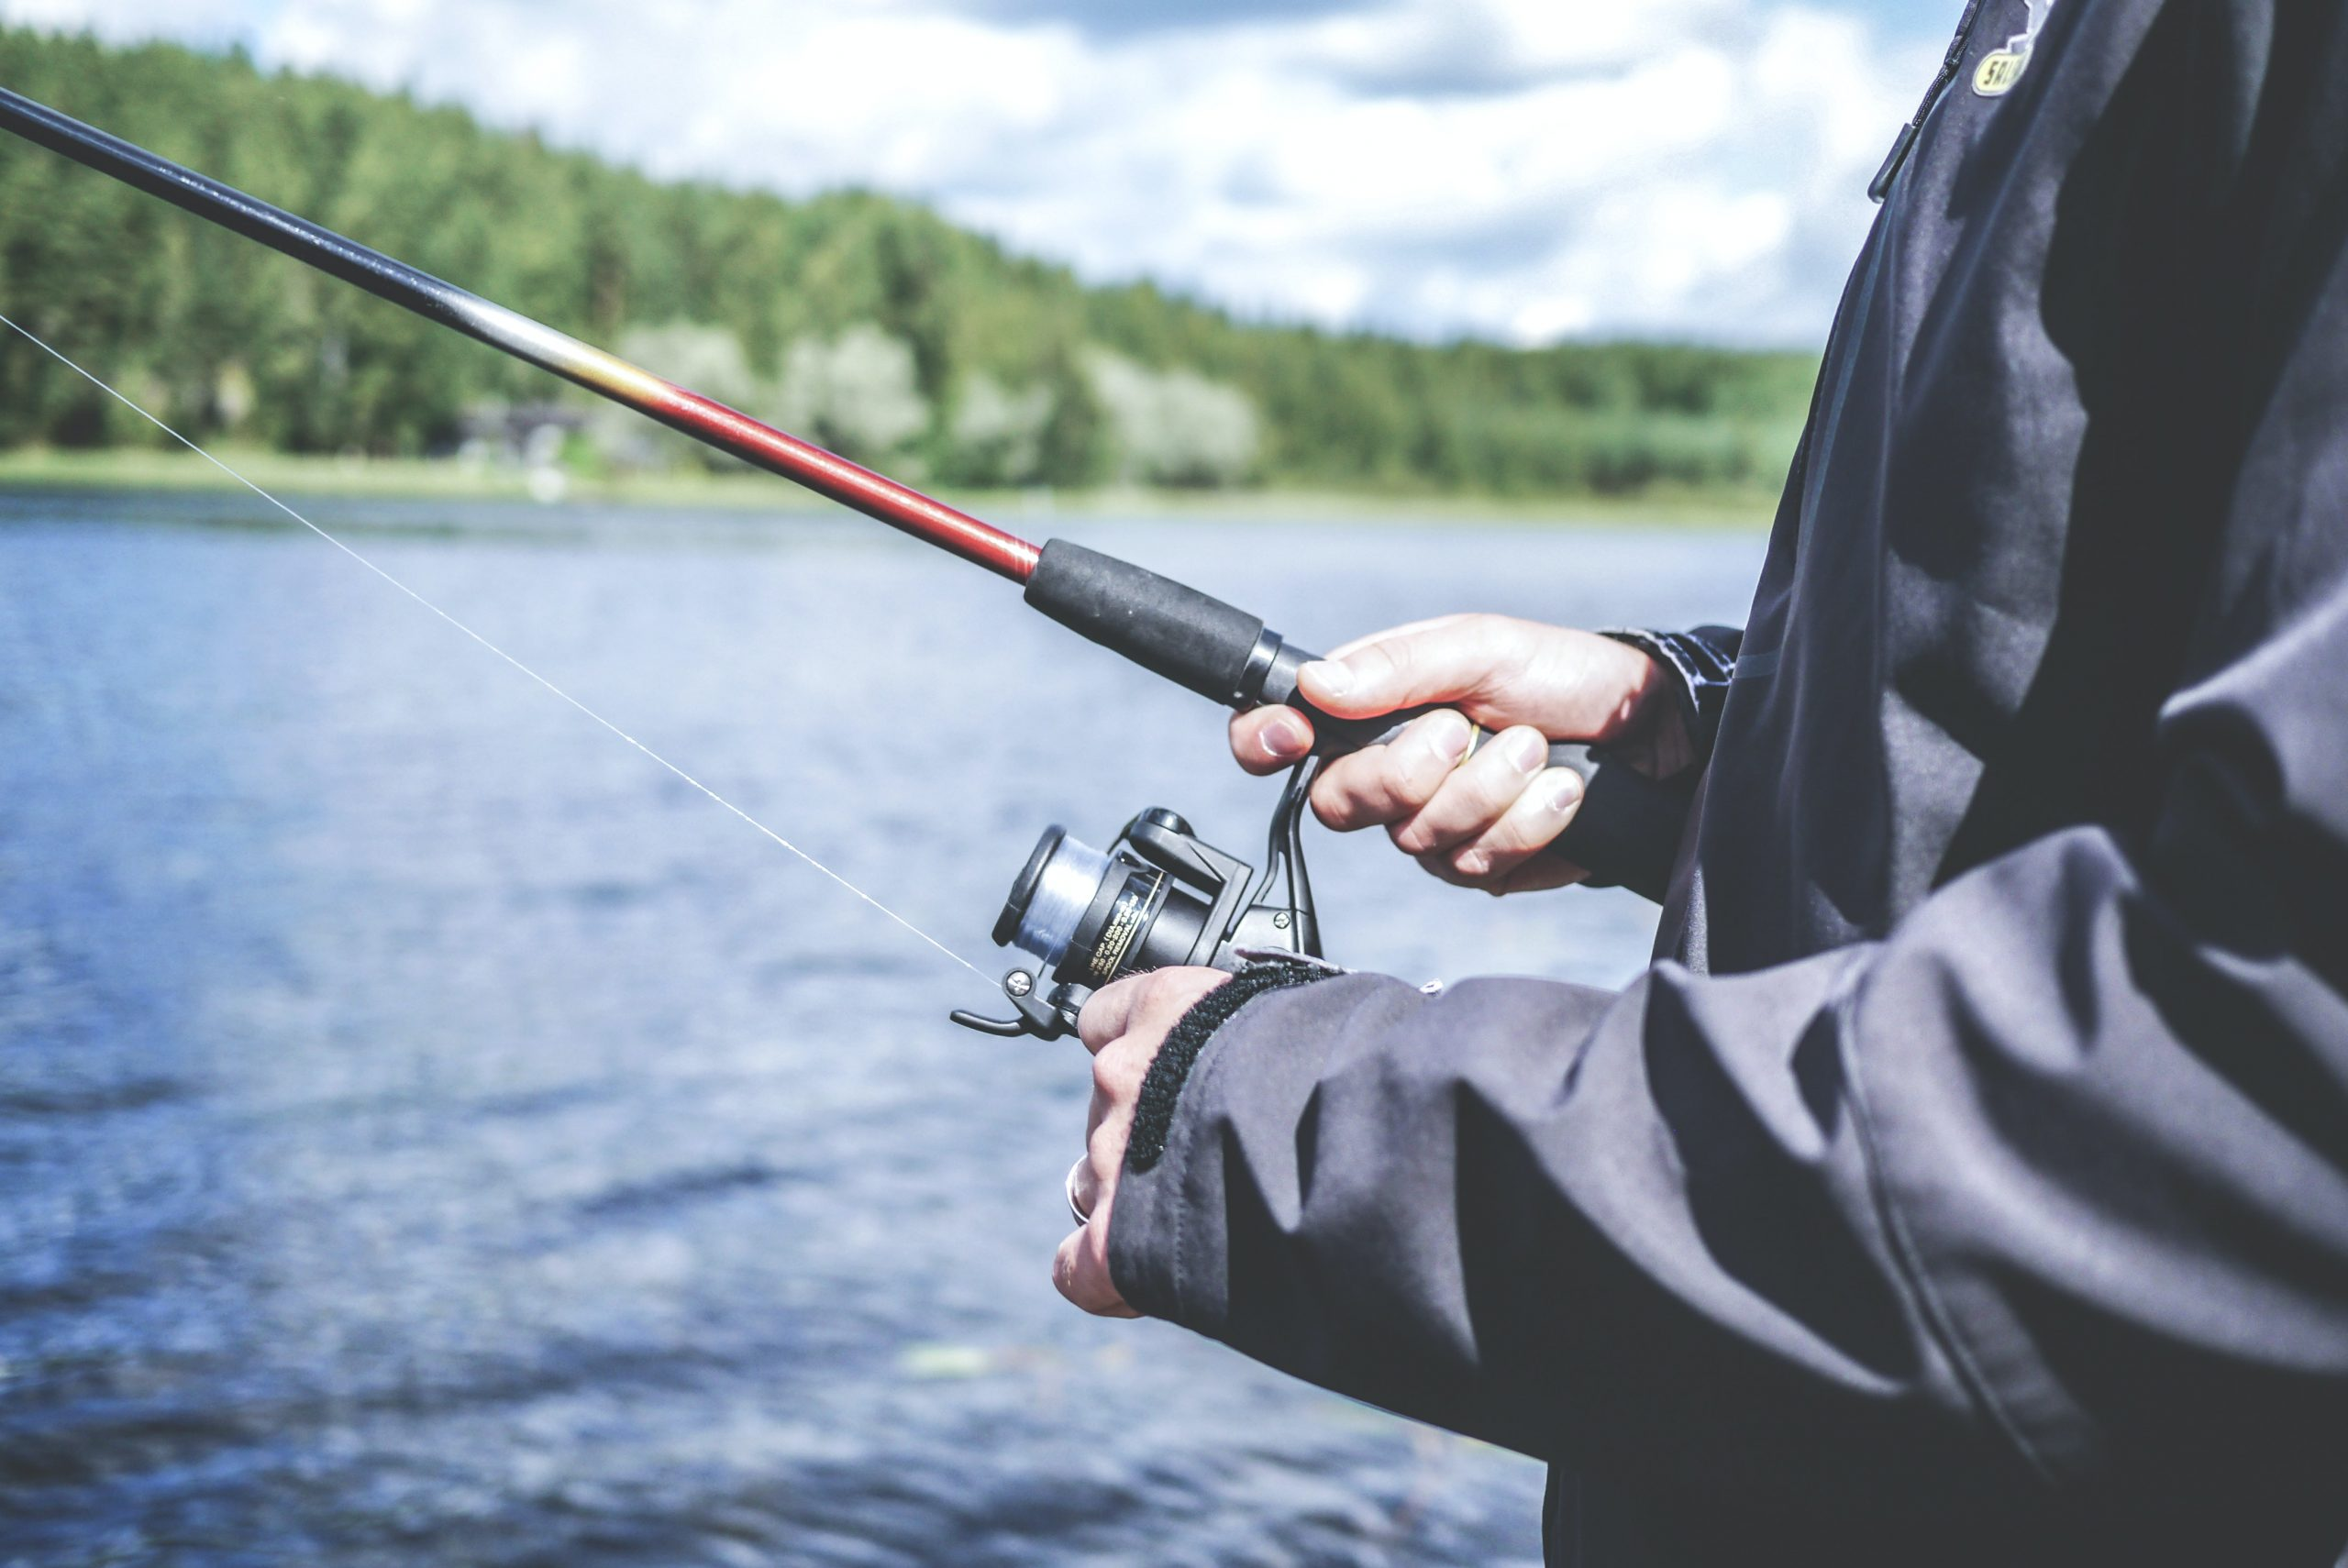 Best Fly Fishing Rods Overall